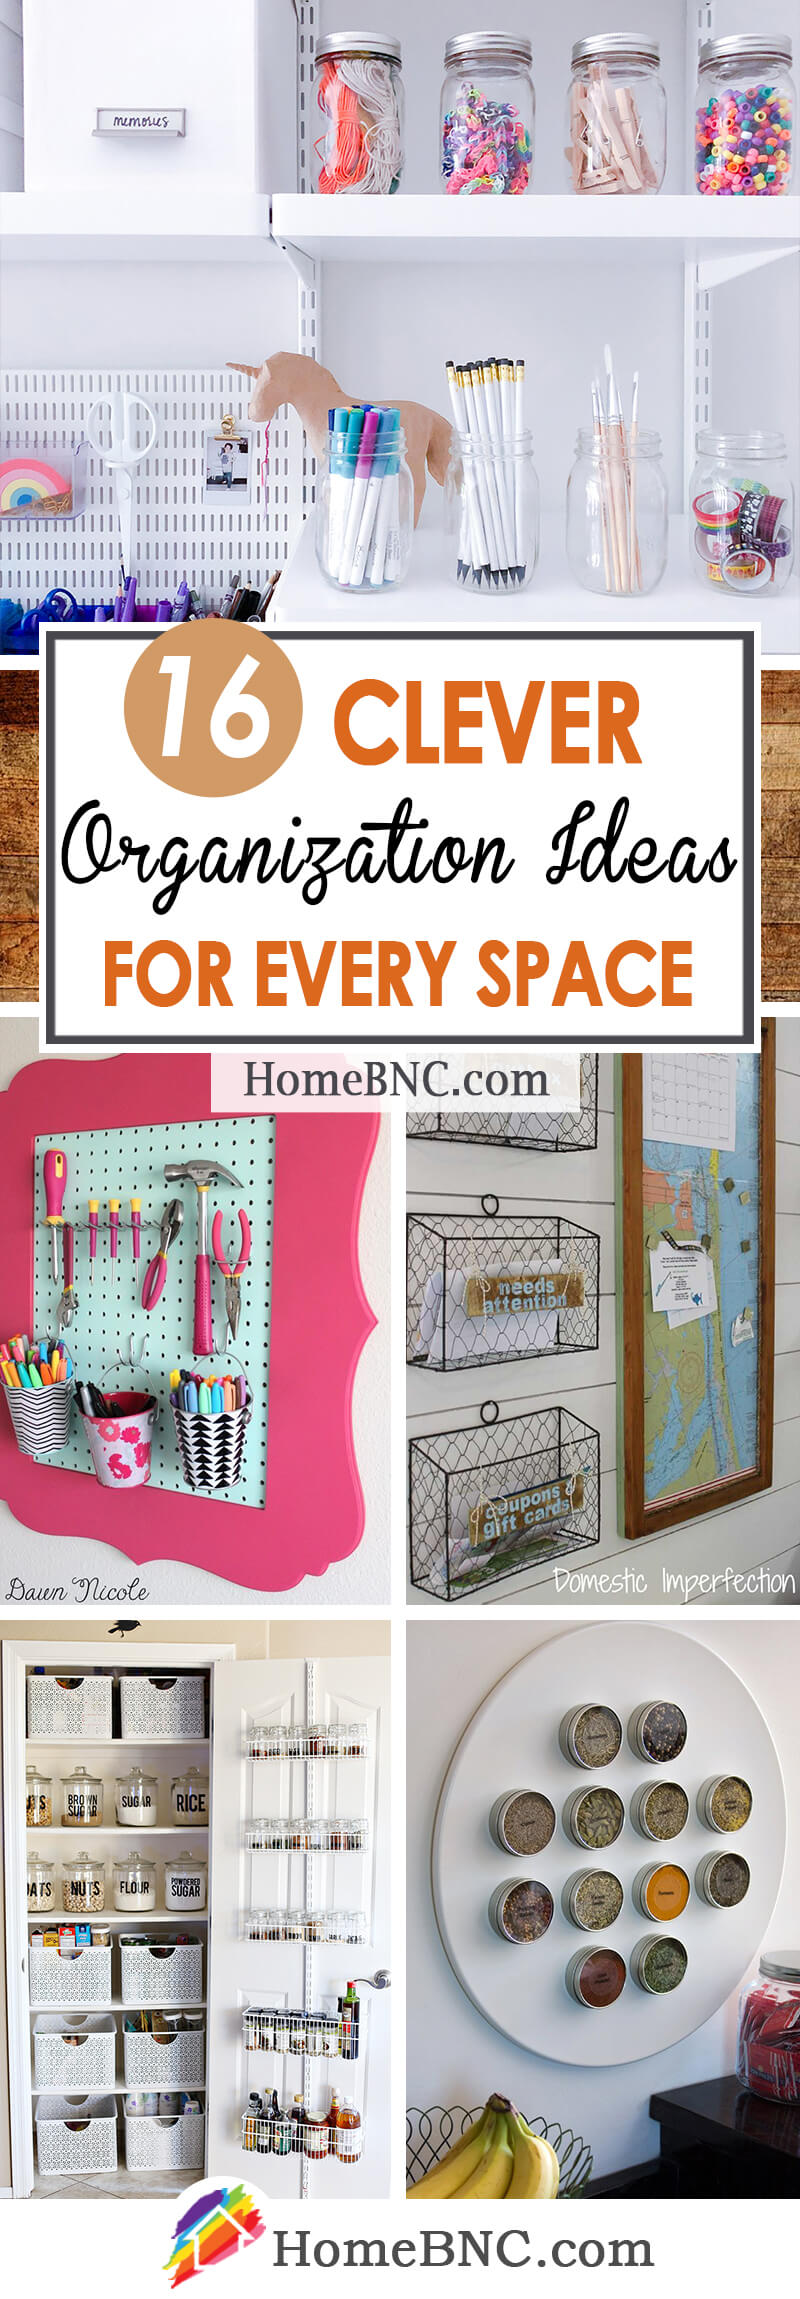 16 Best Organization Ideas for Every Space in 2019 #summerhomeorganization 16 Best Organization Ideas for Every Space in 2019 #summerhomeorganization